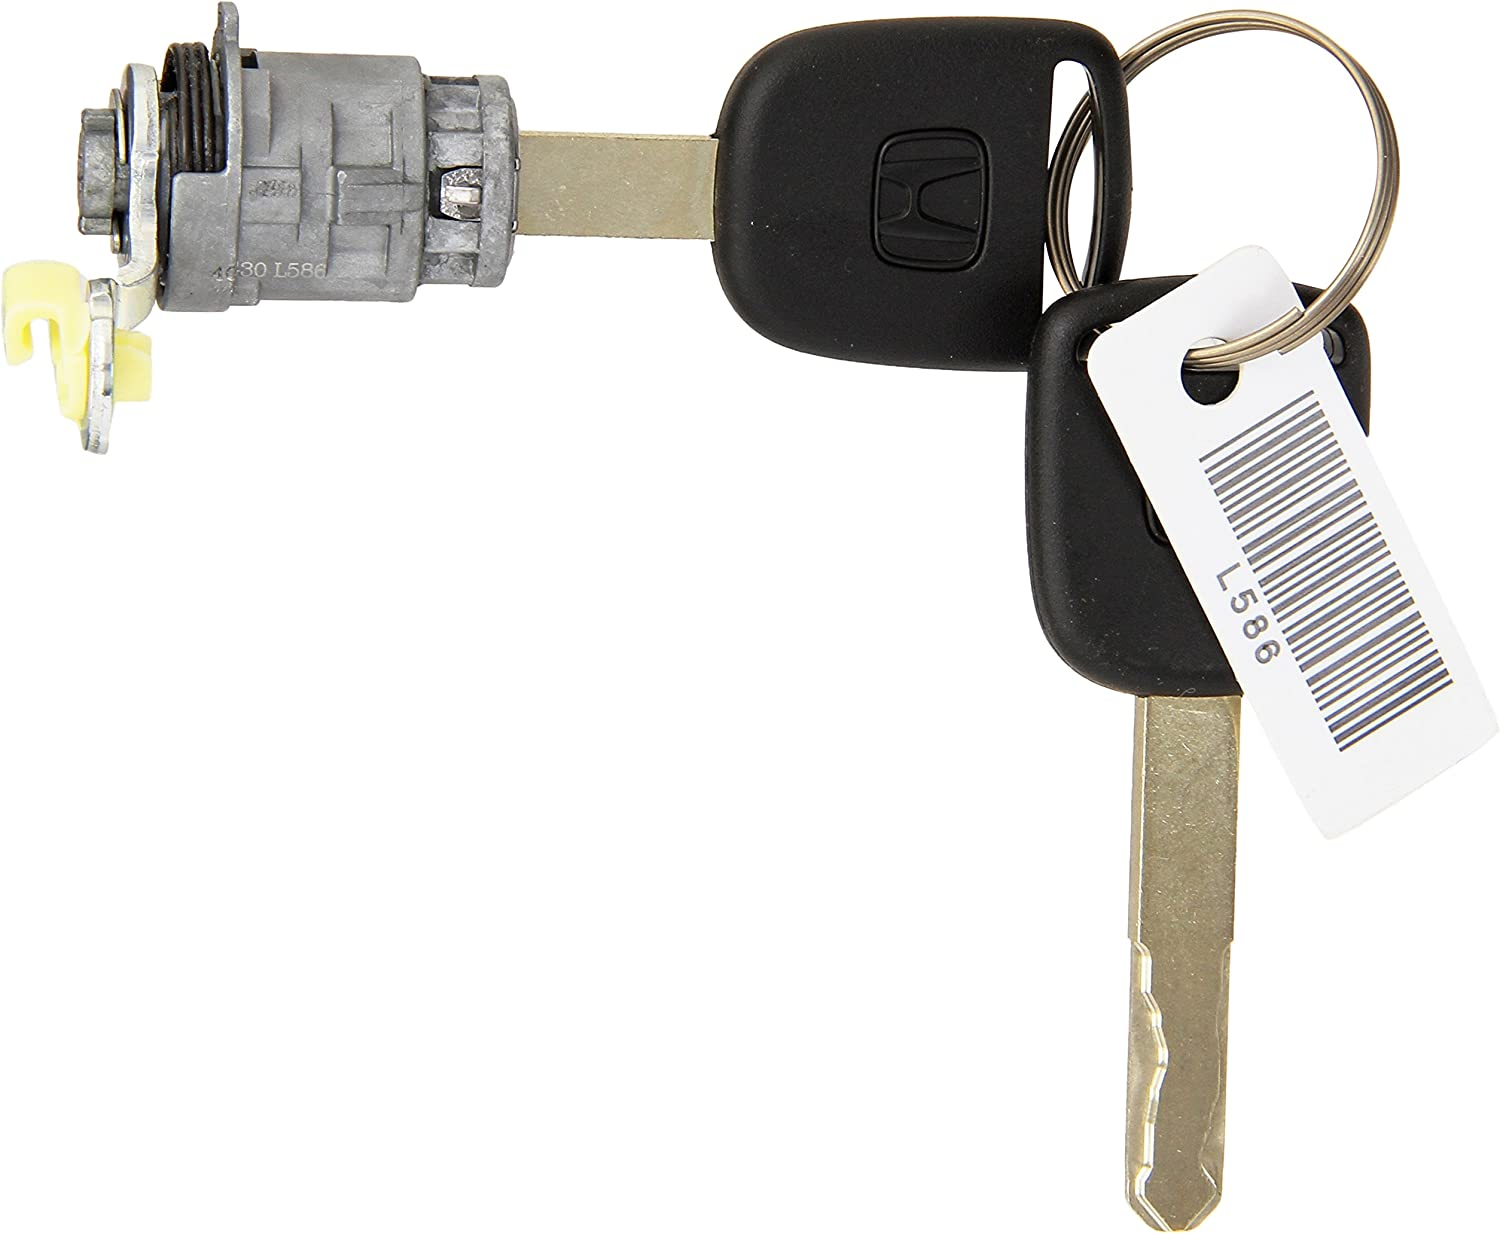 99-04 Odyssey L//R Door Lock Cylinder Recode Rekey To Match Your Current Old Existing Key Fits Honda 98-02 Accord 72185-S9A-013 00-09 S2000 01-05 Civic